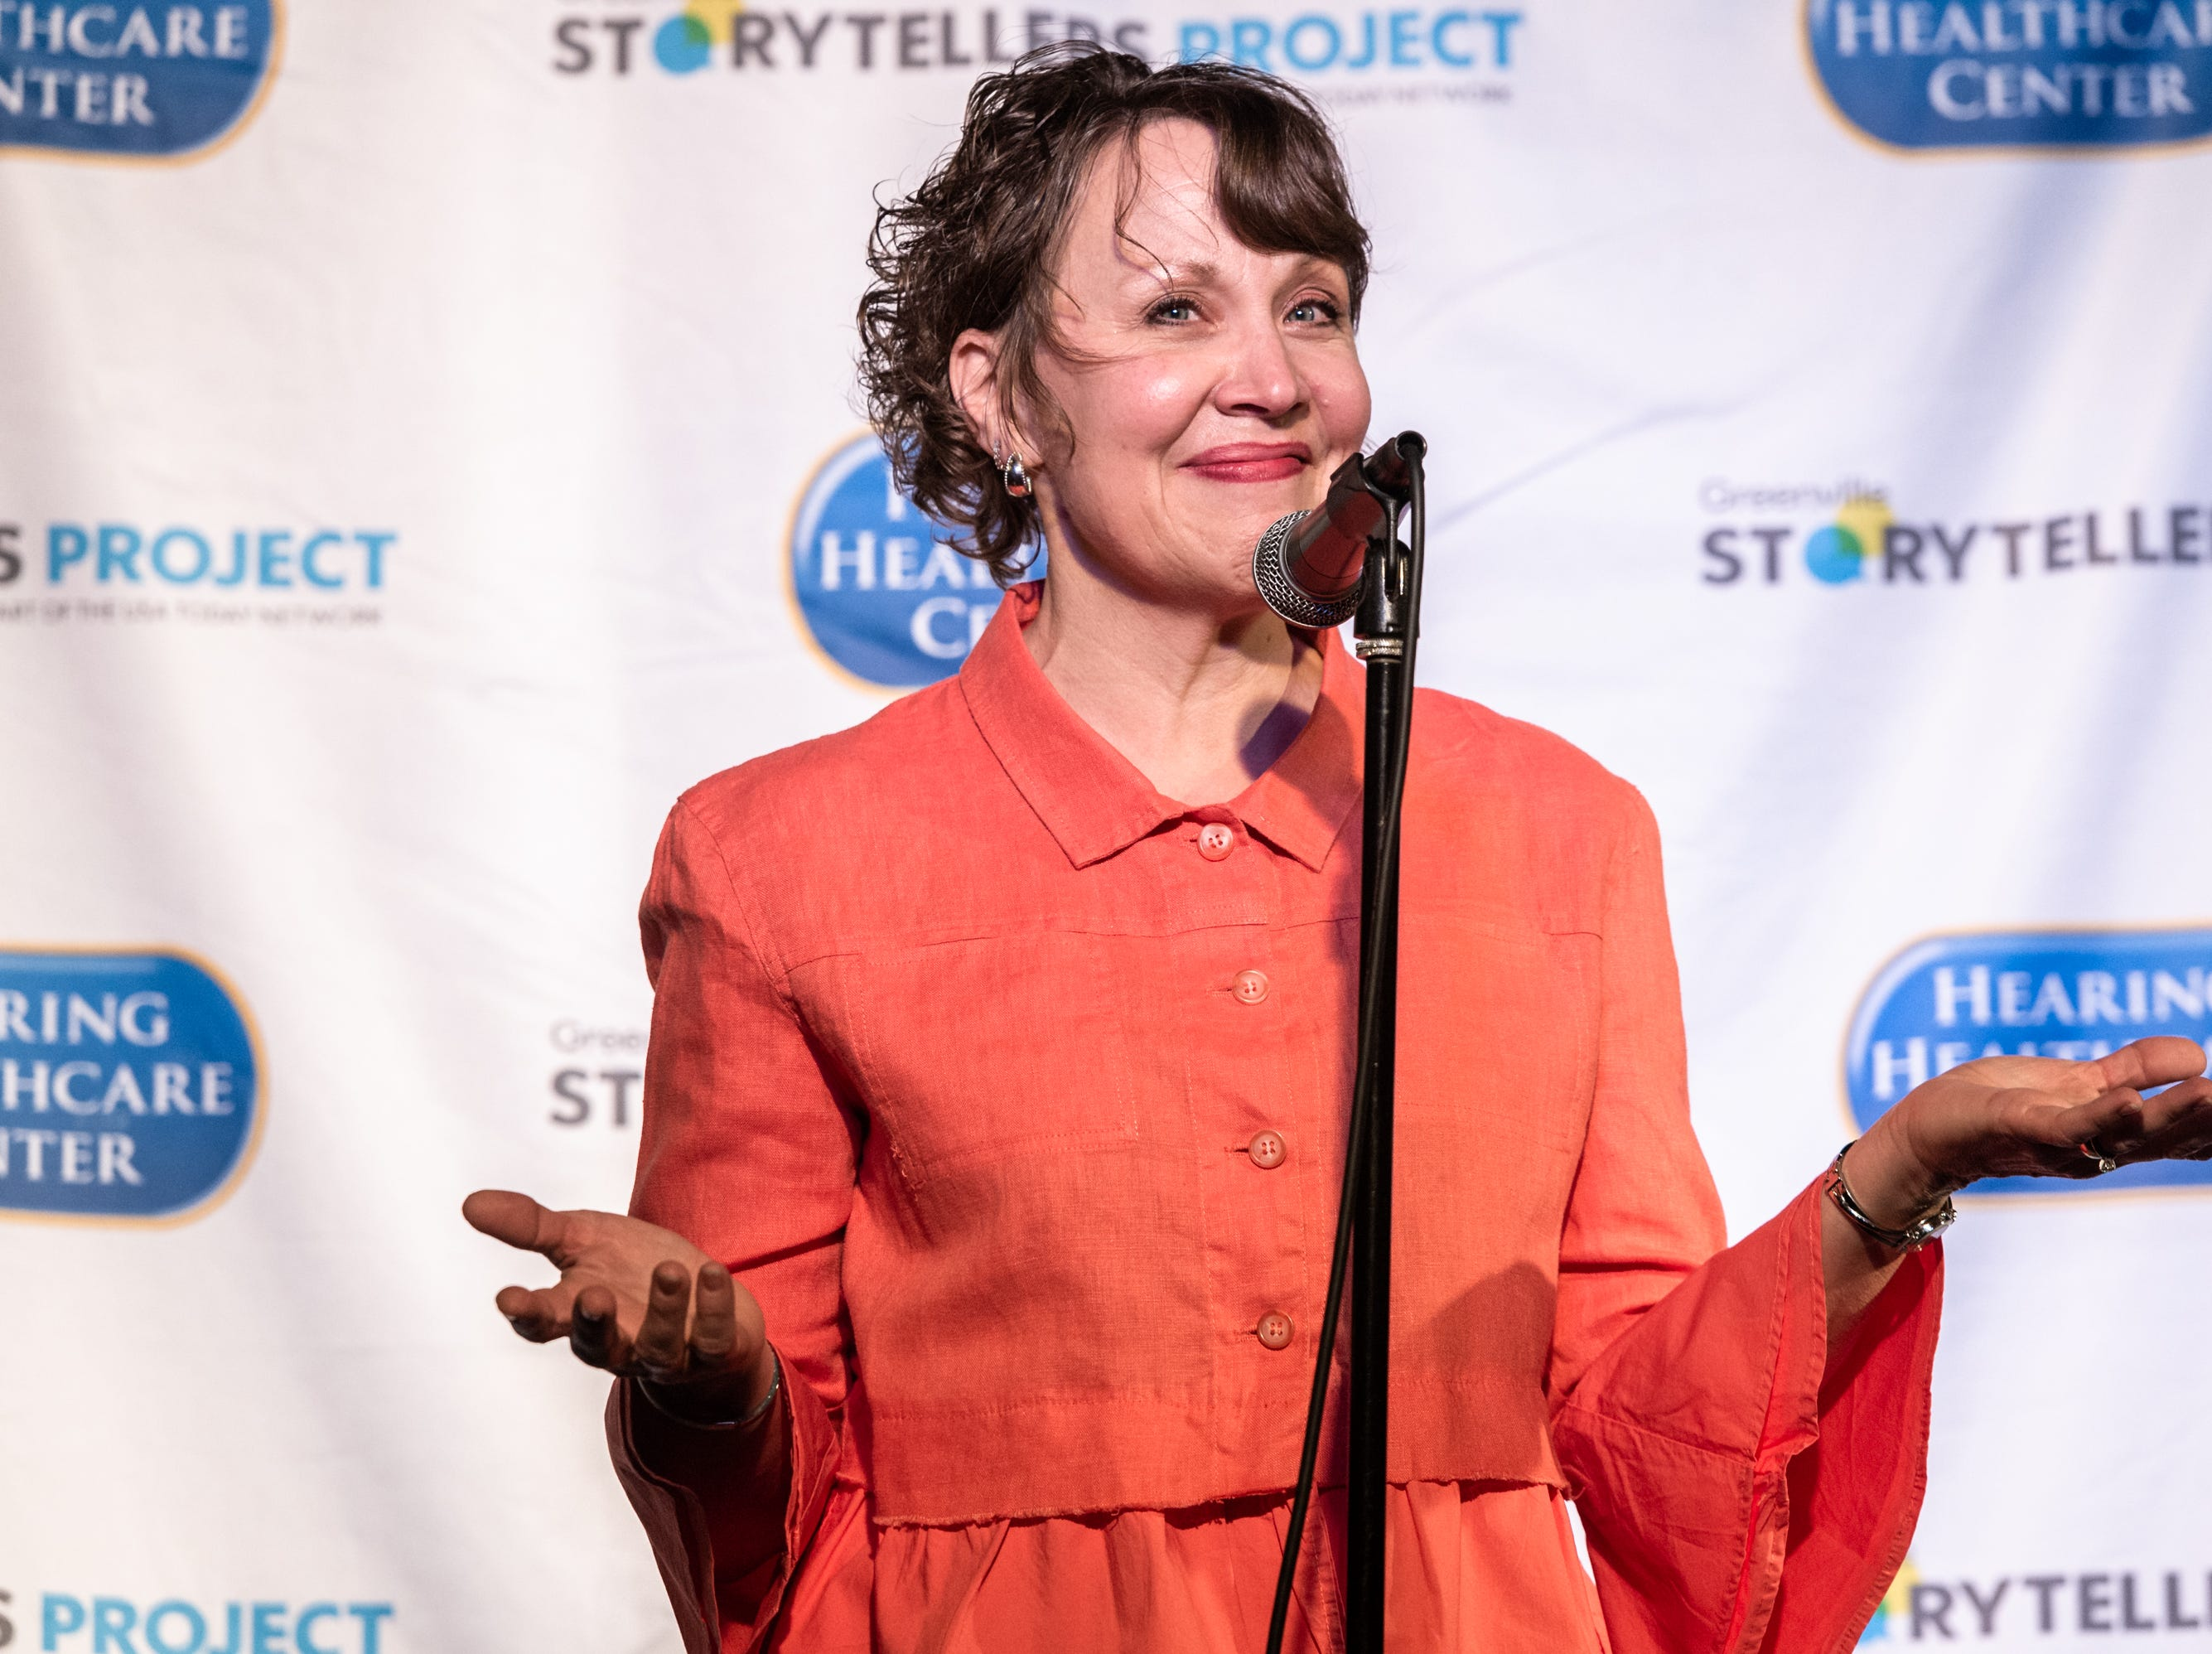 Janiece Robinson, a public speaking and etiquette specialist, at the Greenville Storytellers Project event at the Comedy Zone Tuesday, May 14, 2019.